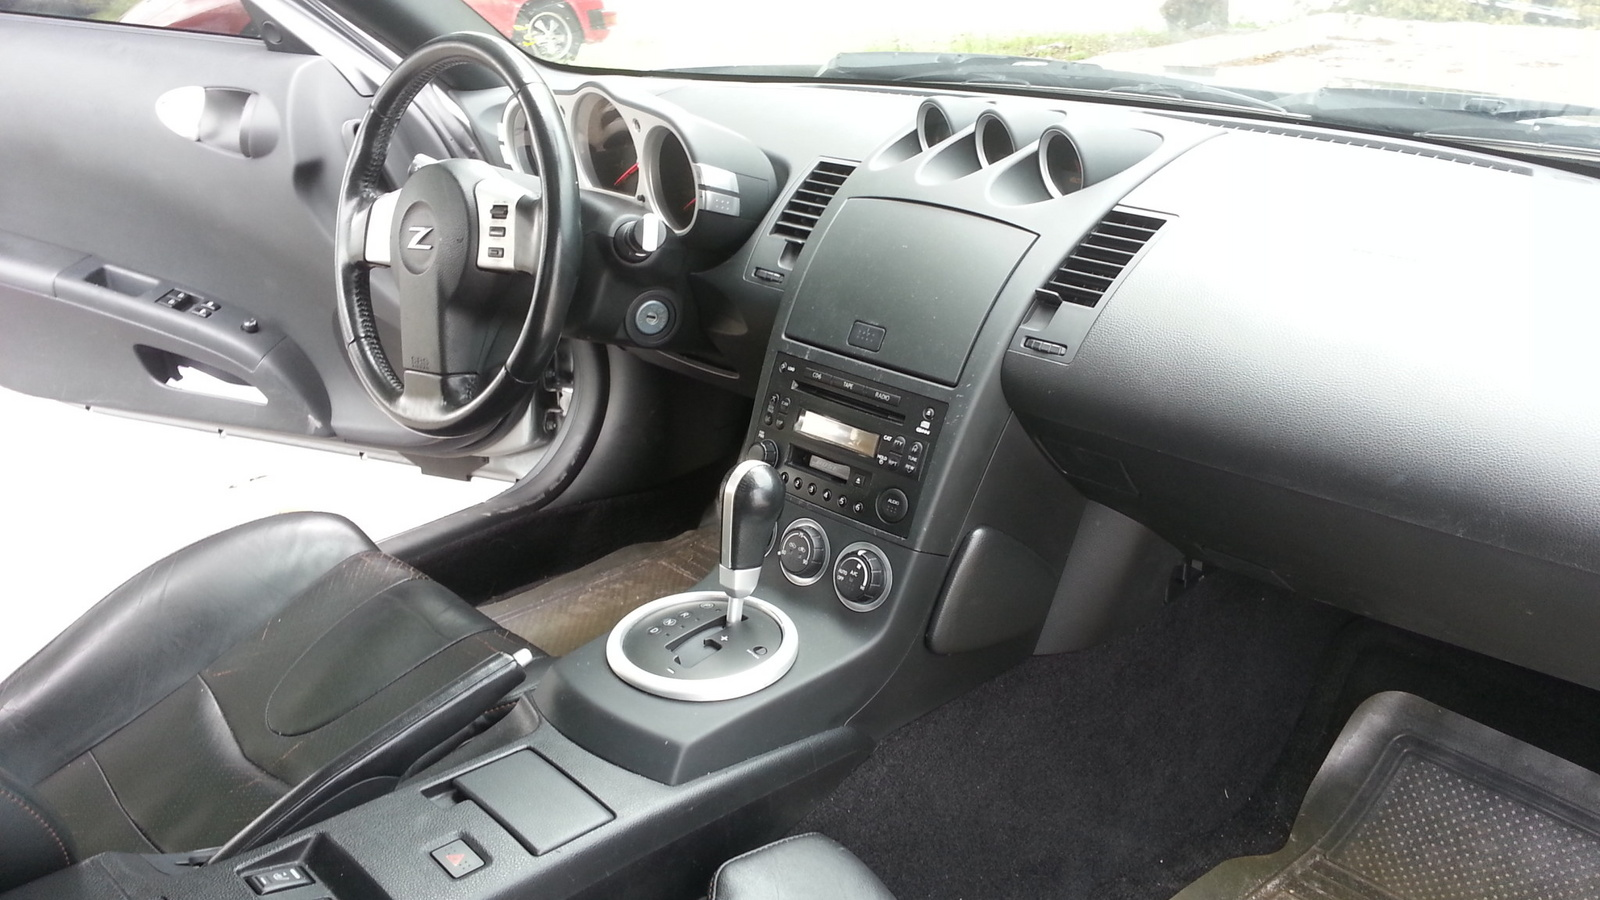 2005 nissan 350z interior pictures cargurus. Black Bedroom Furniture Sets. Home Design Ideas